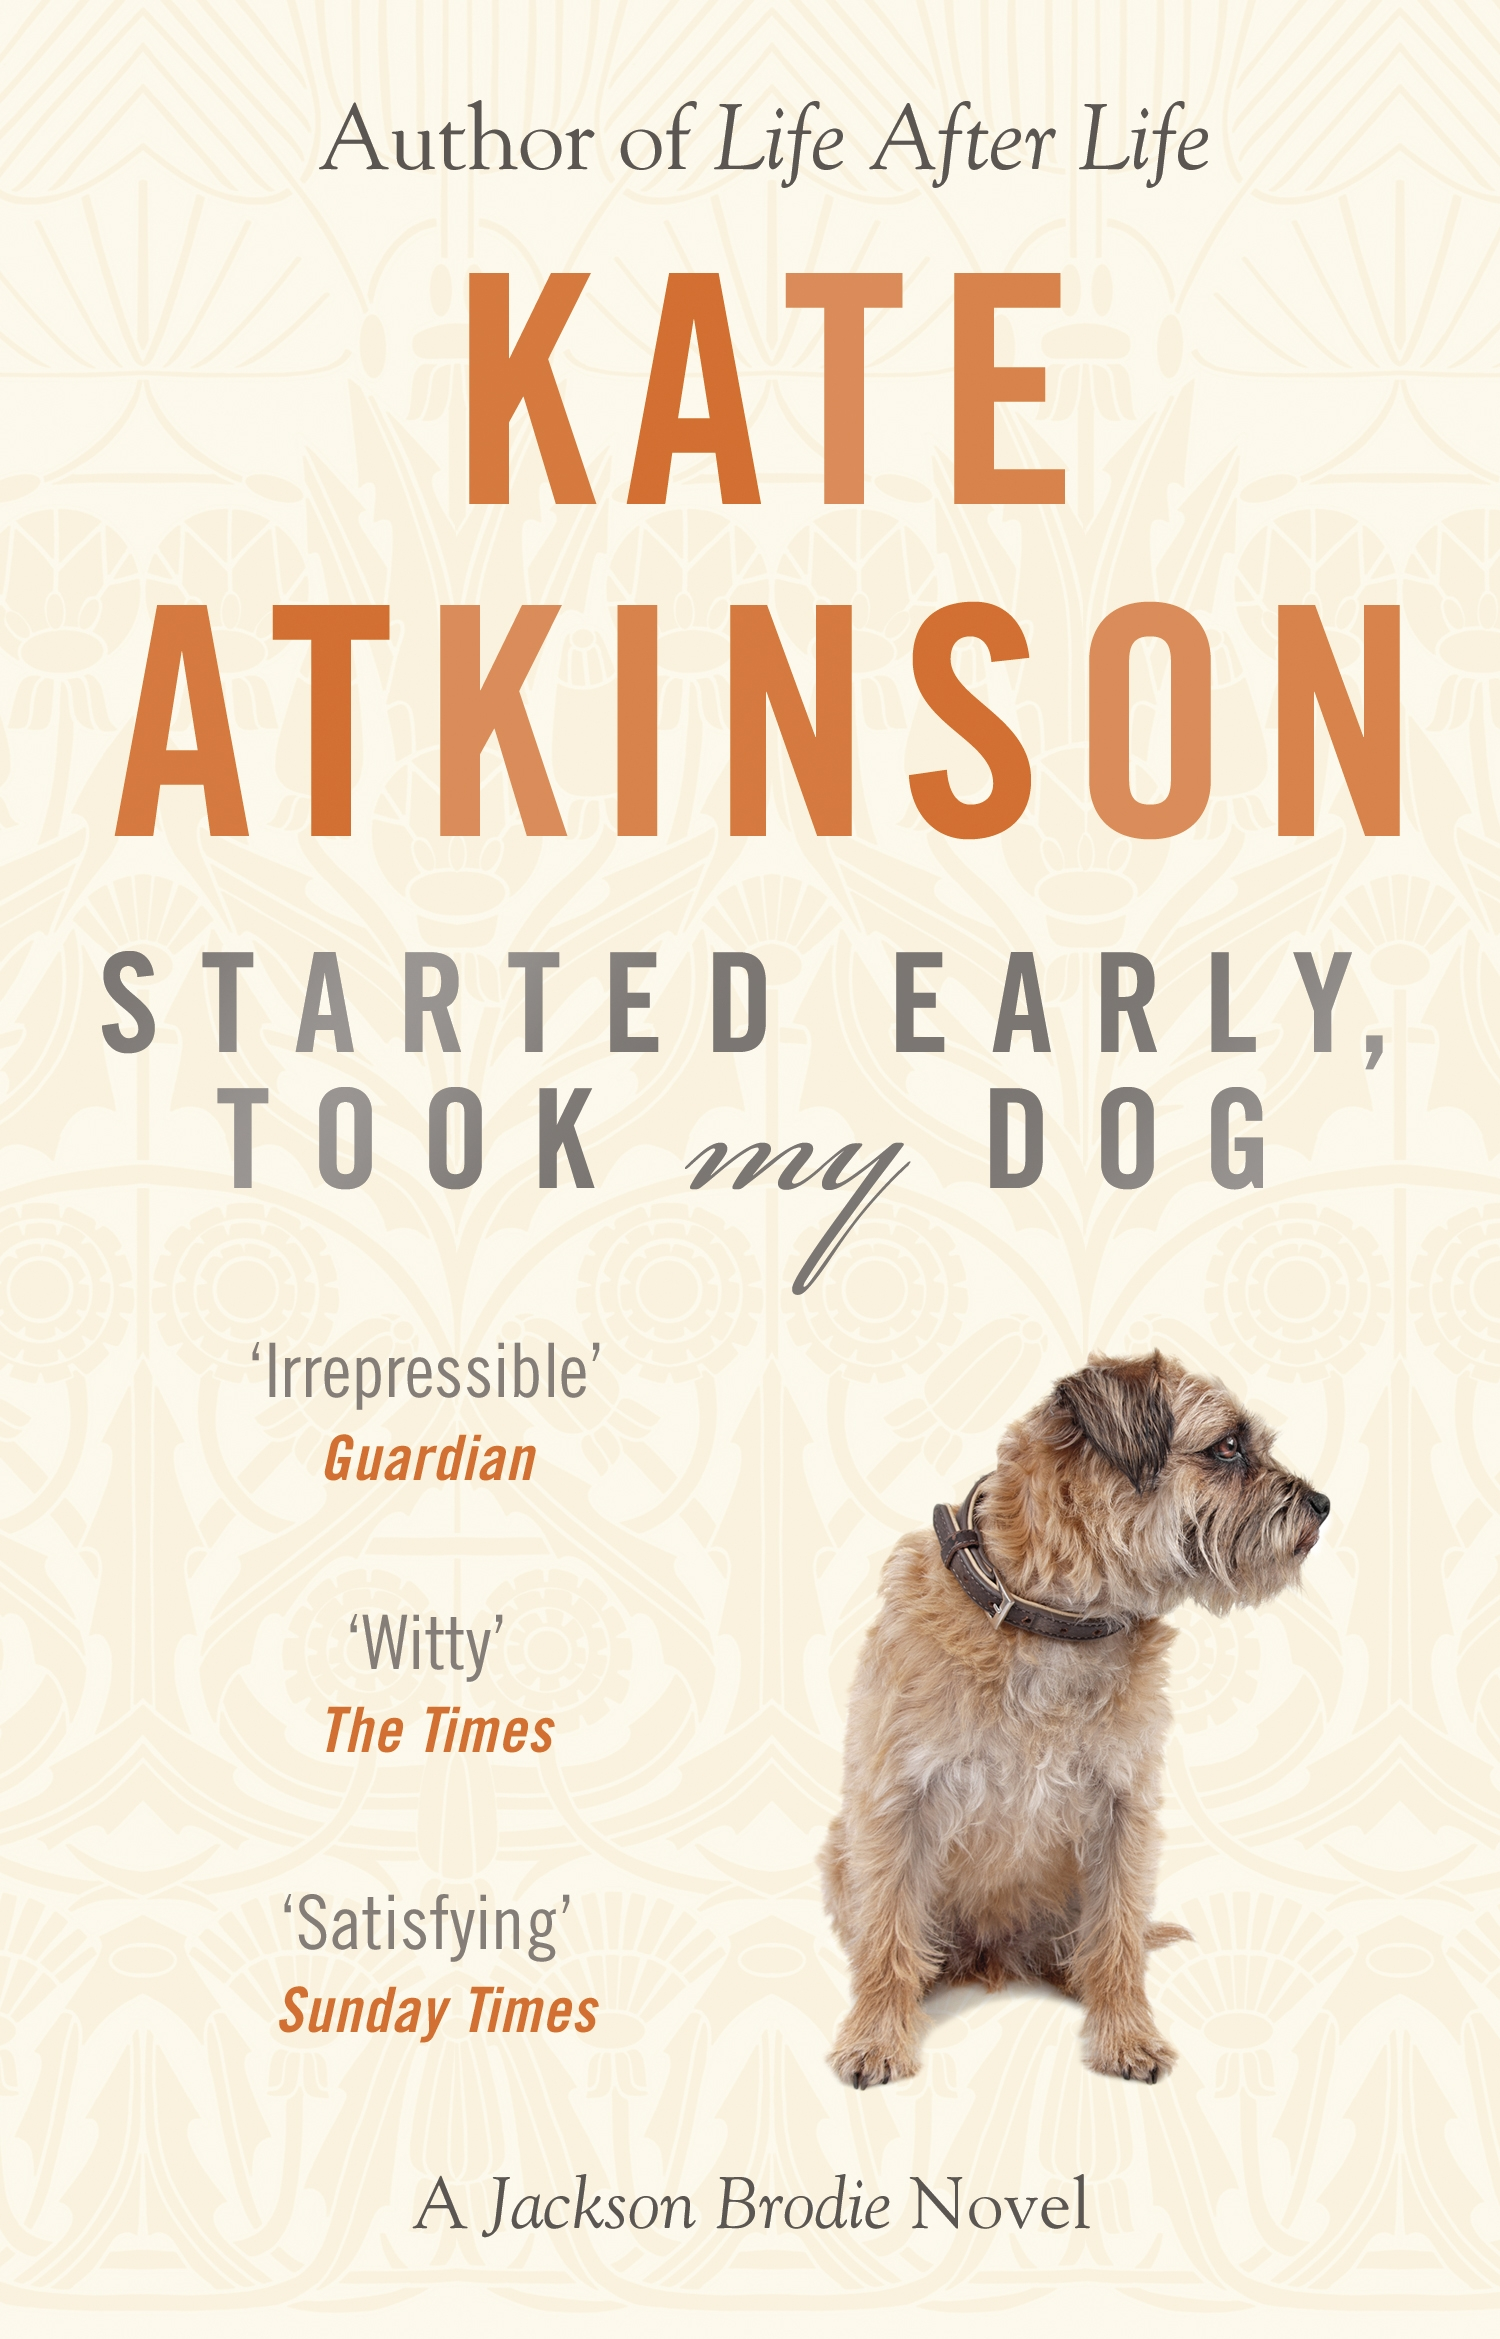 tracy waterhouse kate atkinson